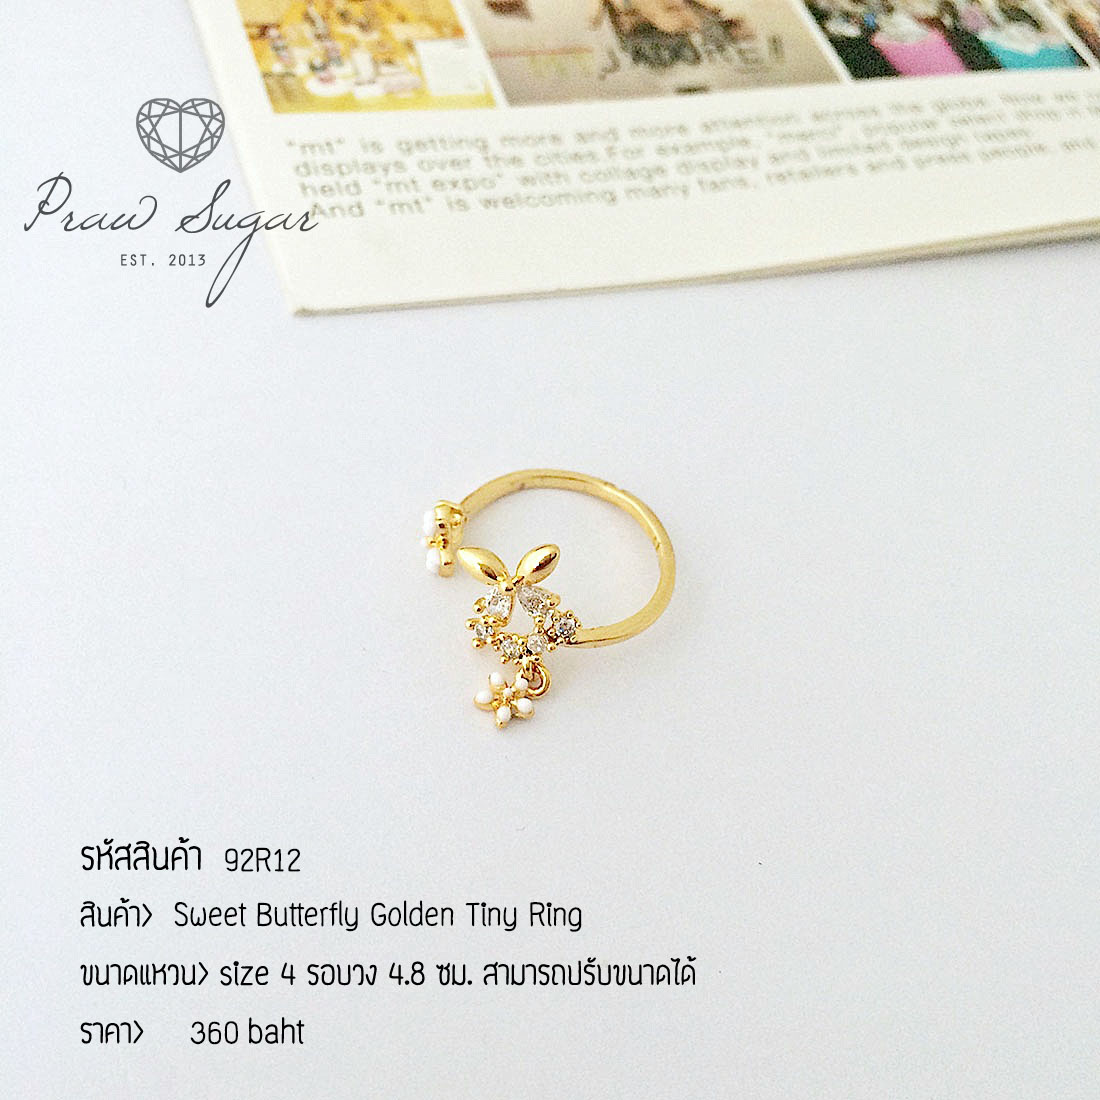 Sweet Butterfly Golden Tiny Ring